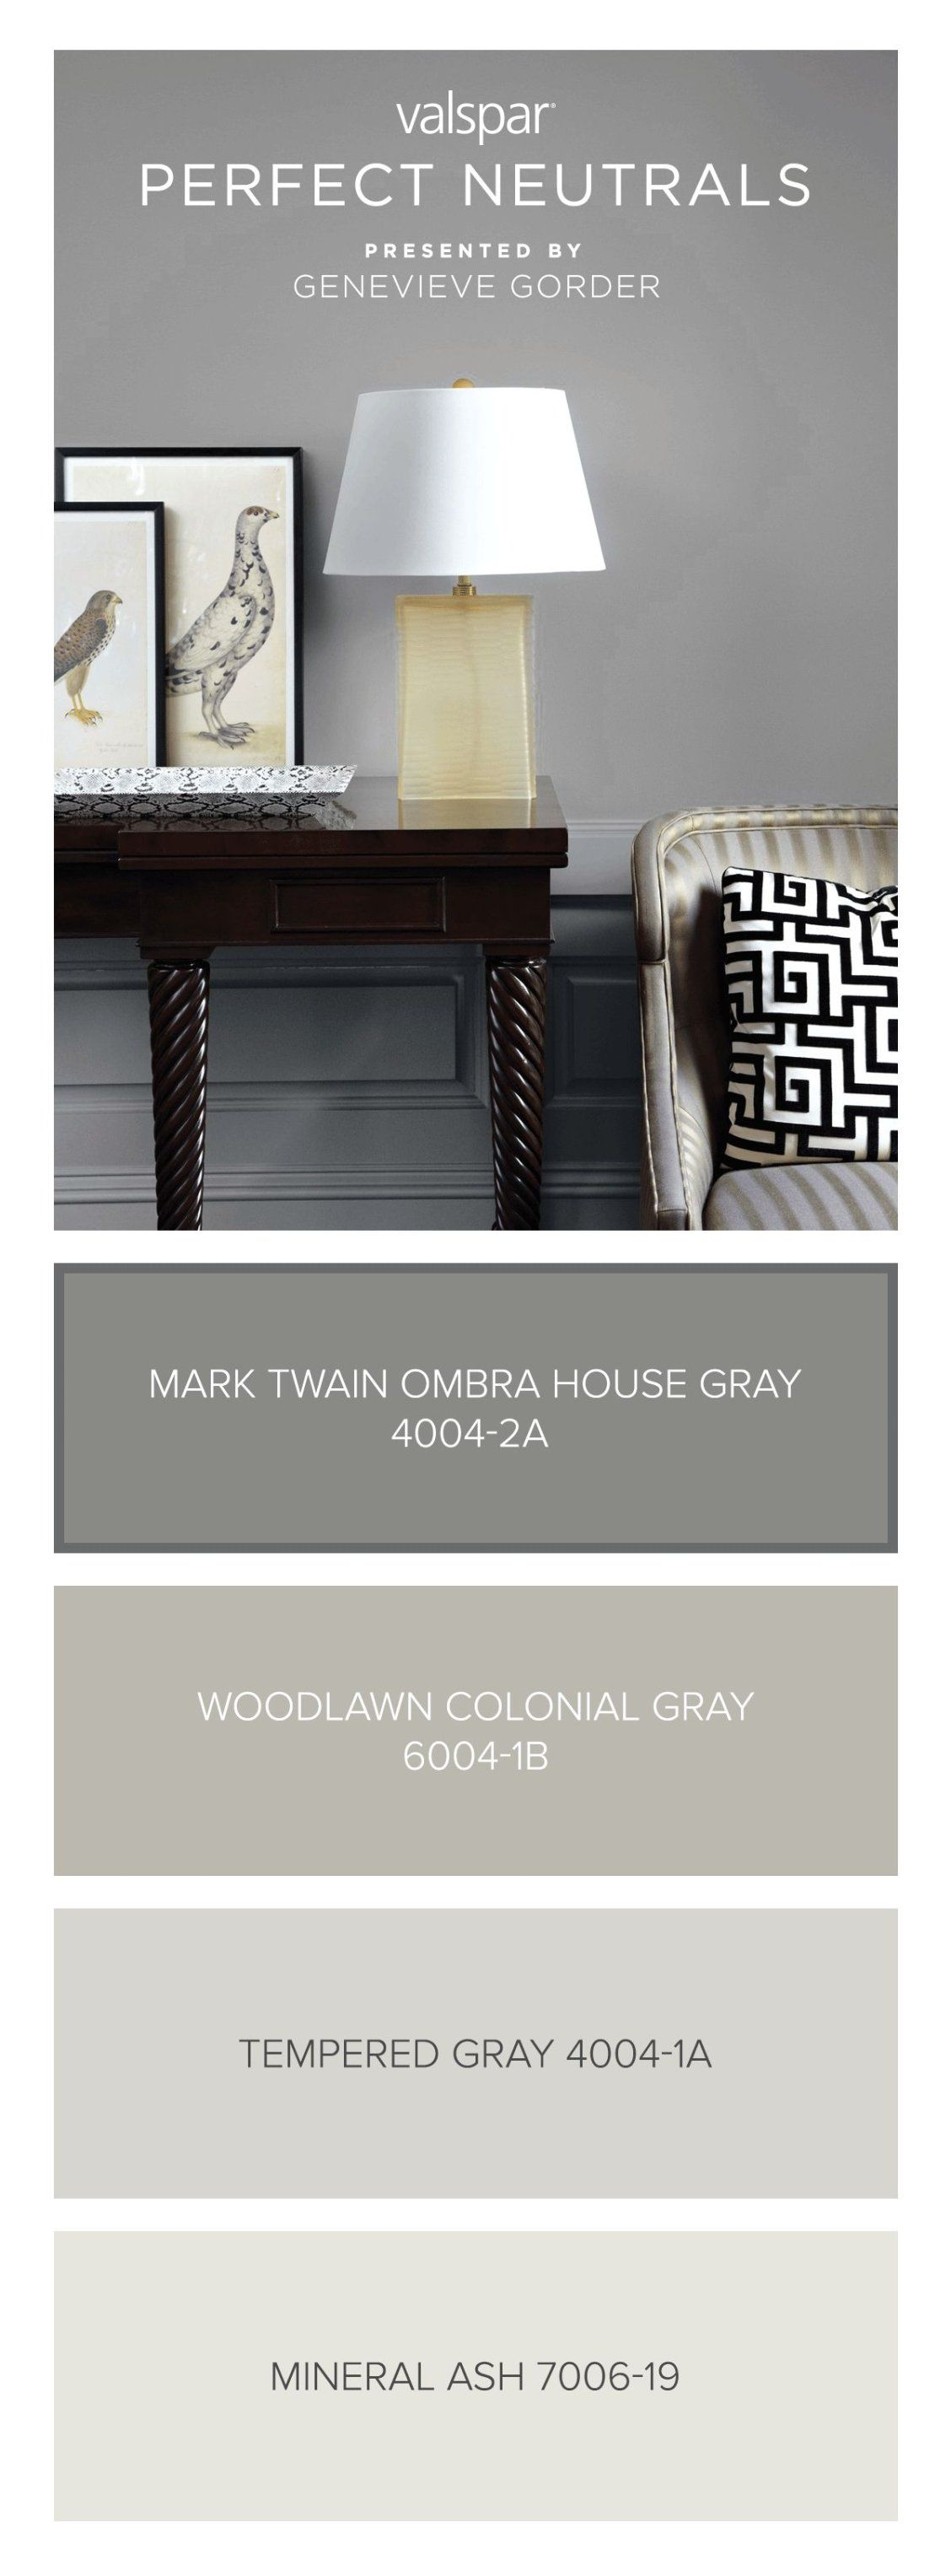 Here S A Tip From Genevieve Gorder Mark Twain House Ombra Gray 4004 2a Is Dark Enough To Be Paint Colors For Living Room Living Room Colors Living Room Paint